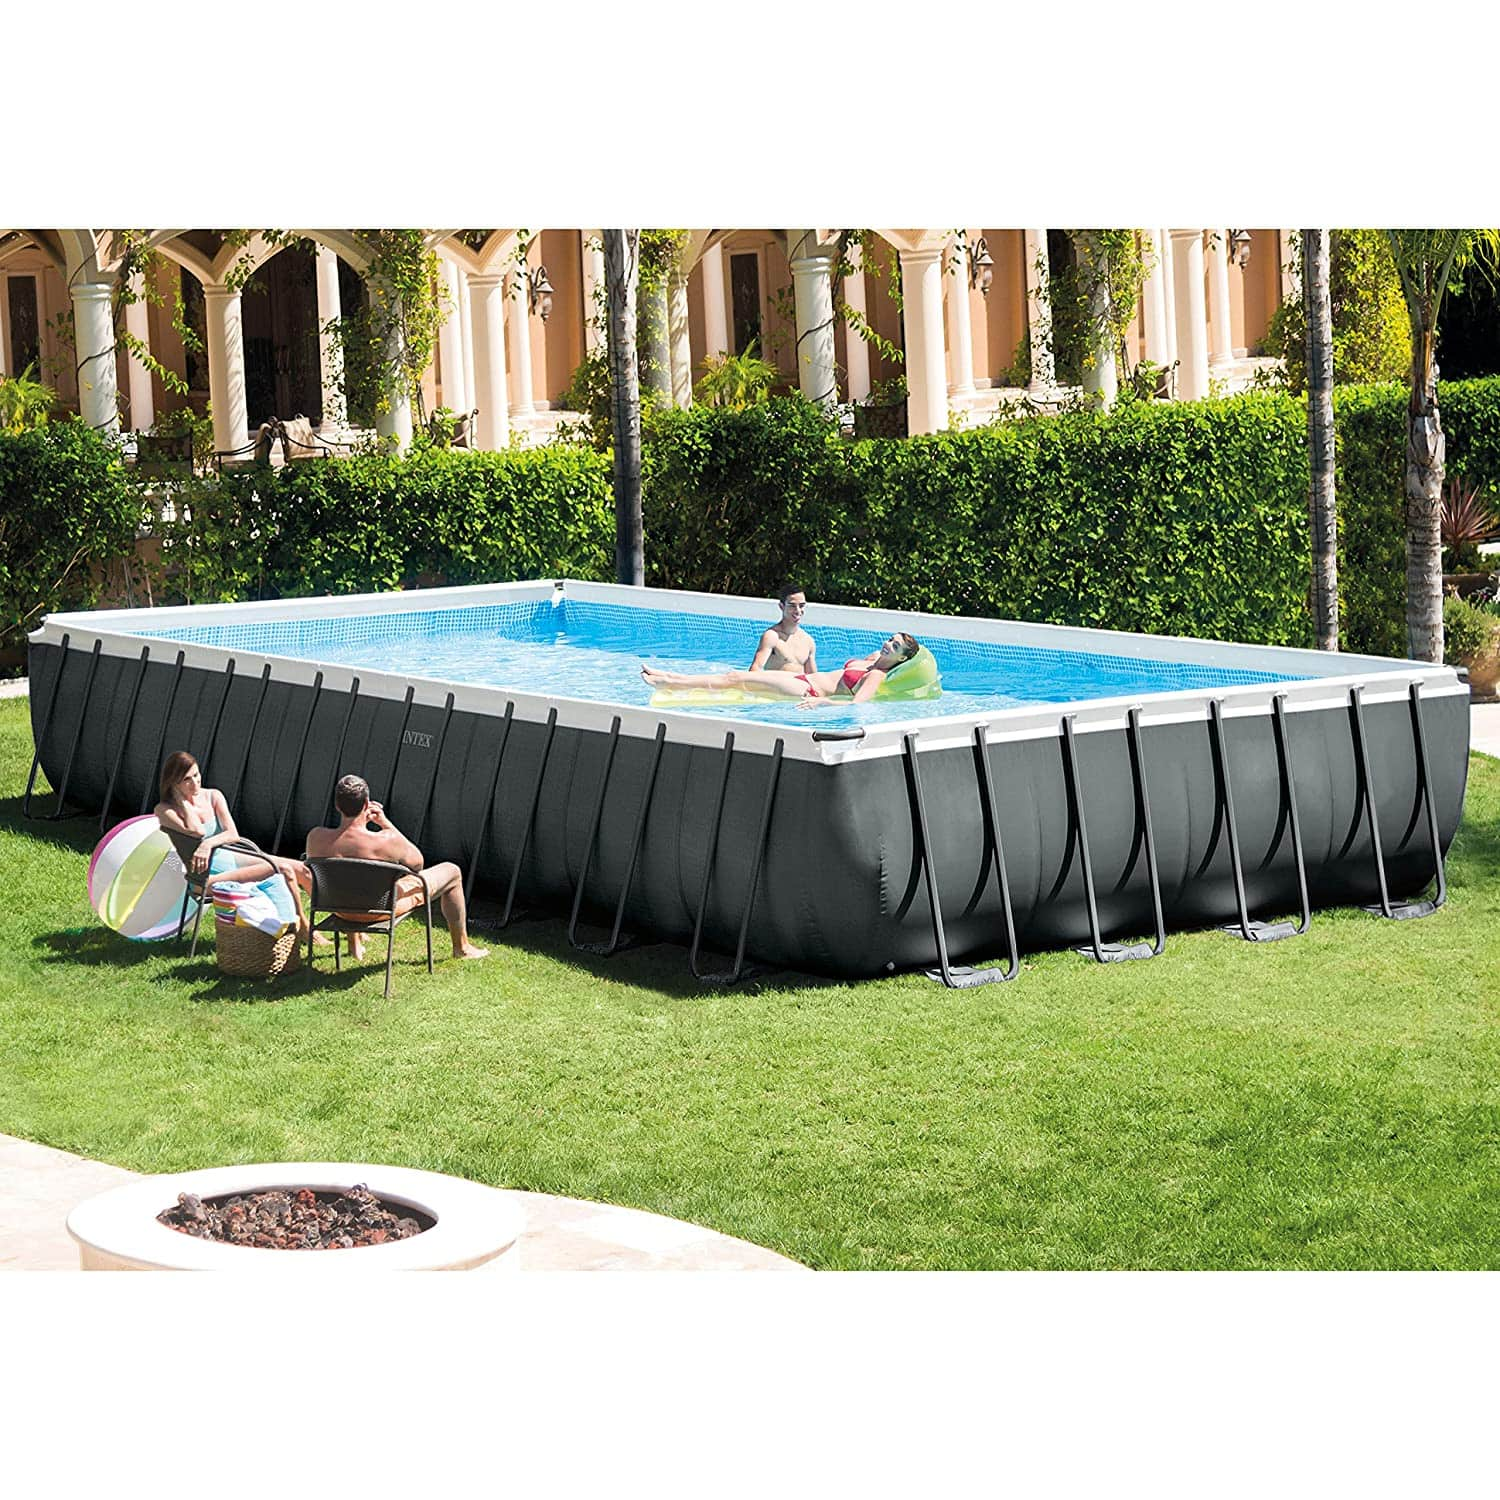 Intex 32ft X 16ft X 52in Ultra XTR Rectangular Pool Set with Sand Filter Pump & Saltwater System Ships FREE $1575.92